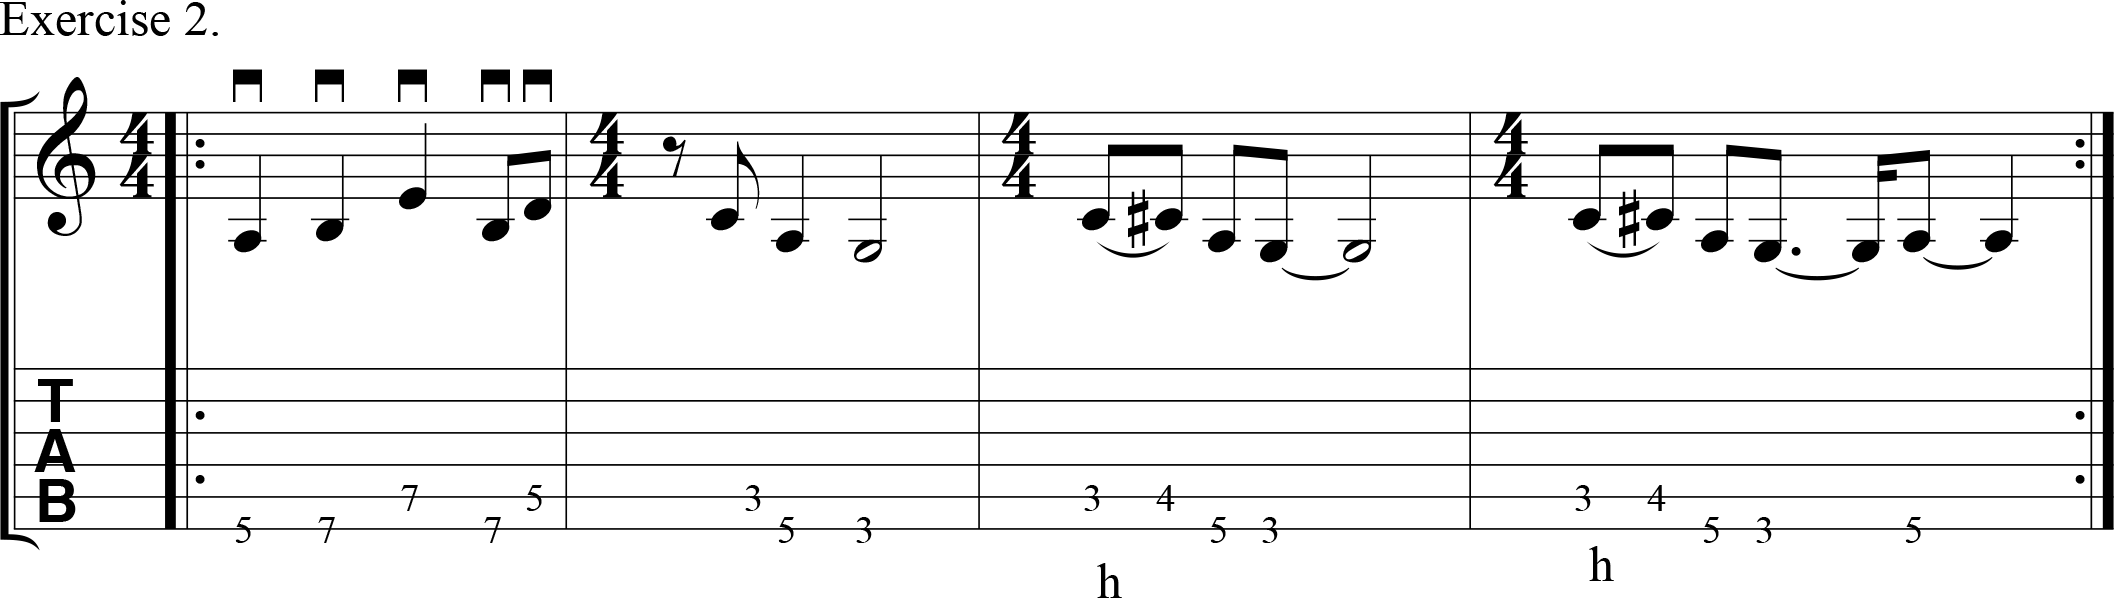 Downpicking exercise in a blues style.